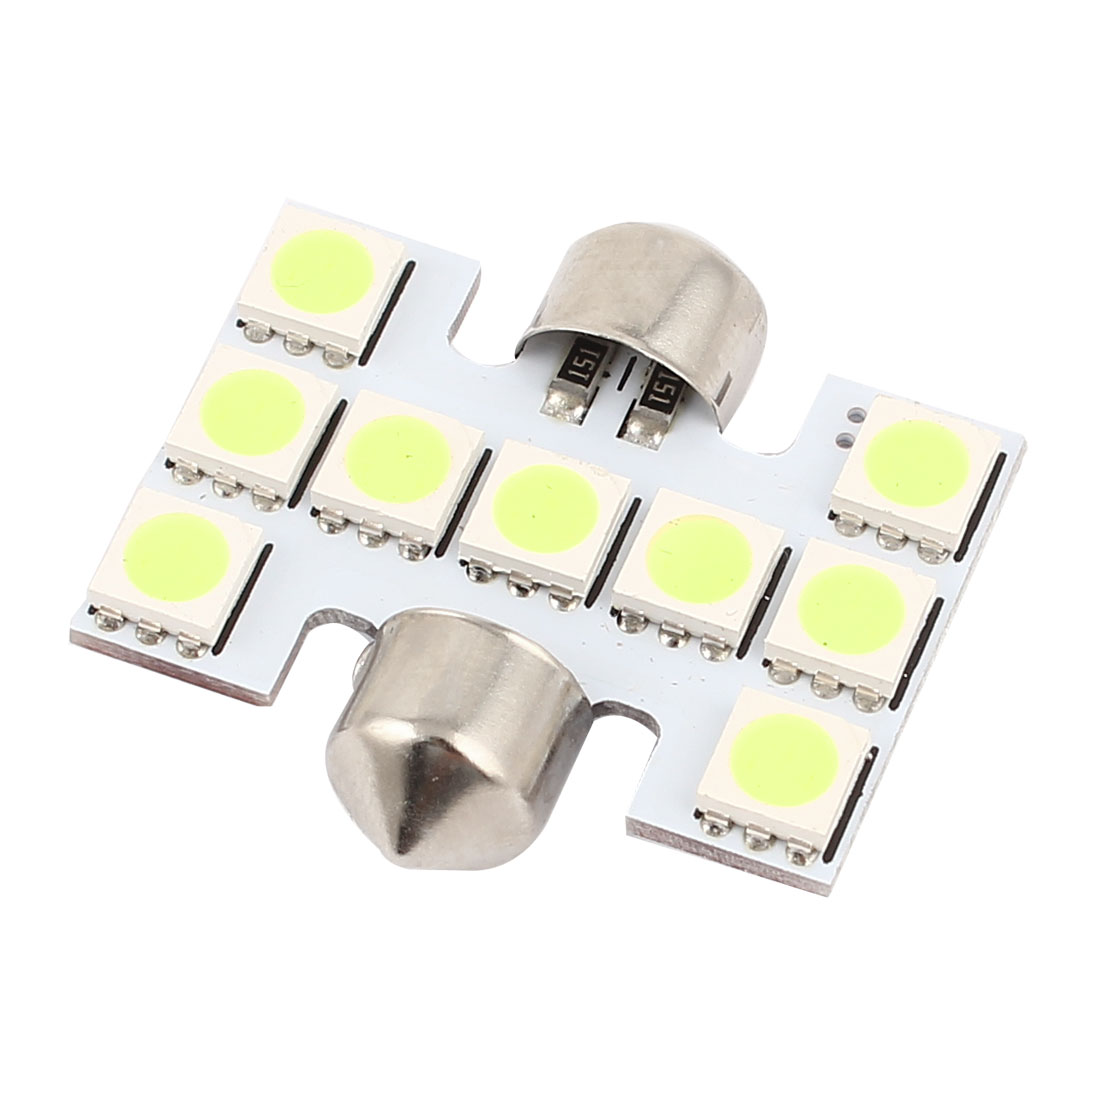 31mm White 9 5050 SMD Festoon LED Light Auto Car Dome Map Lamp internal